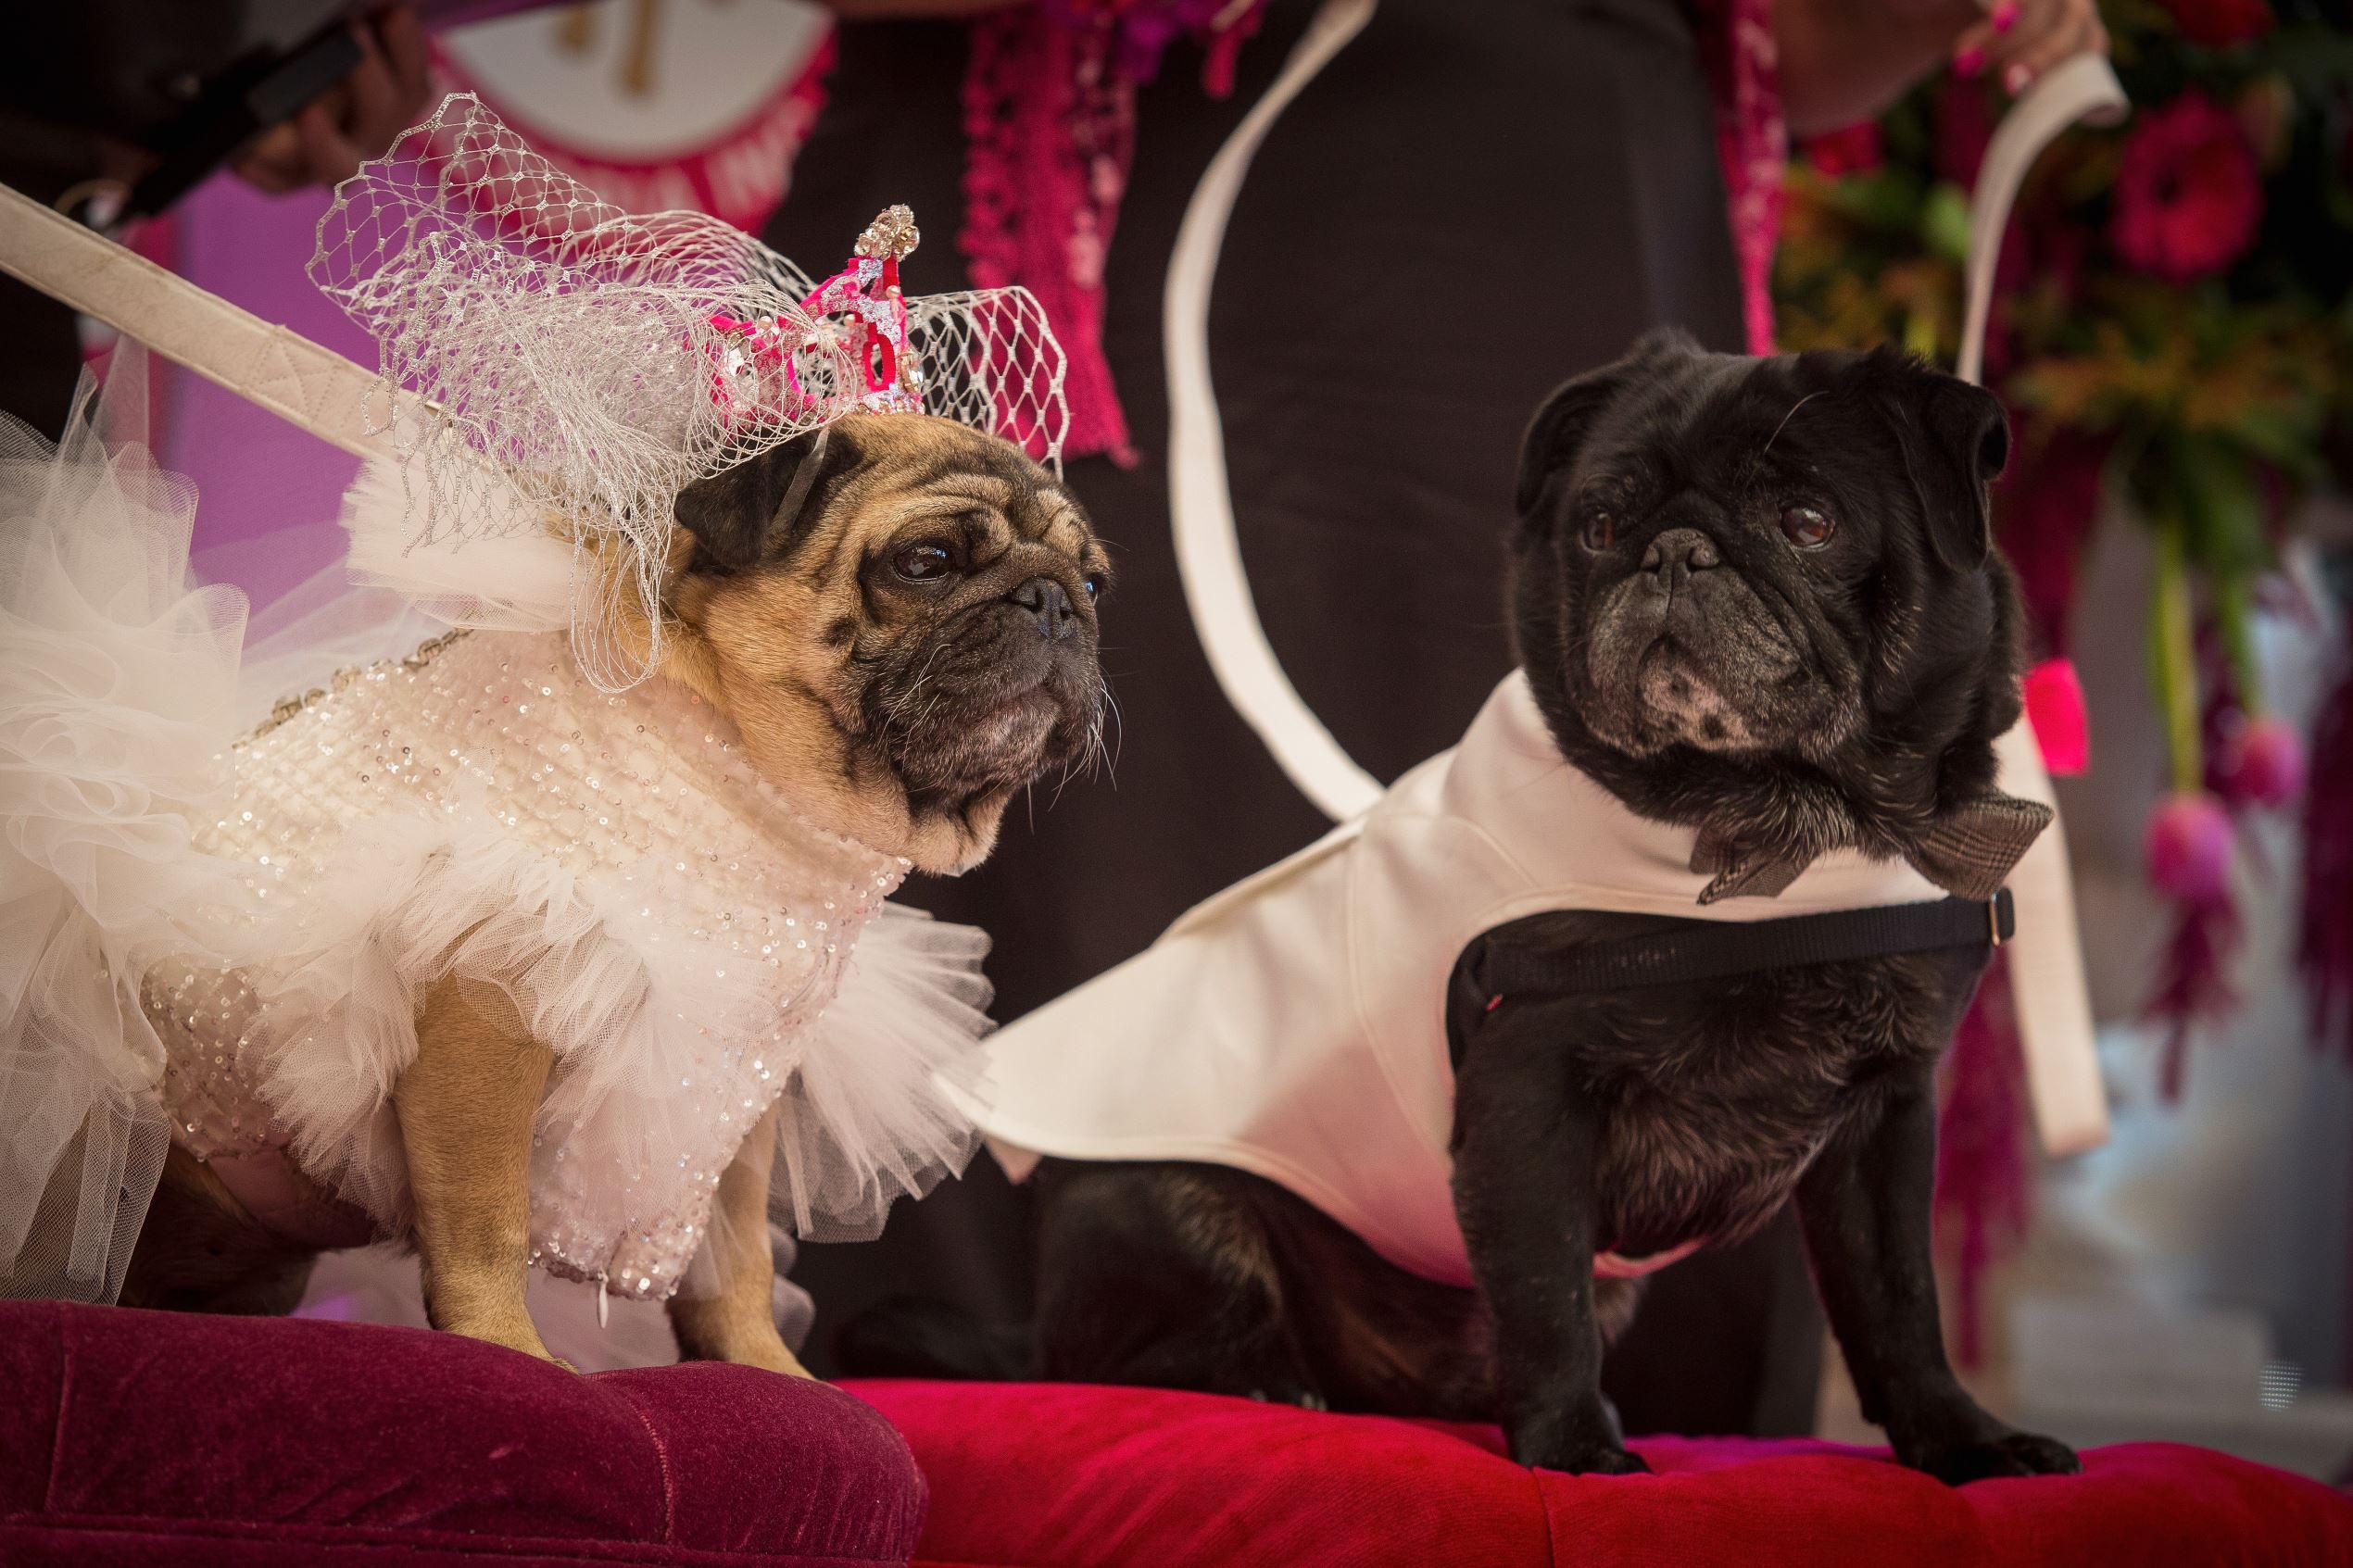 Pugs Walk Down The Aisle Pugs Walking Down The Aisle Puppies